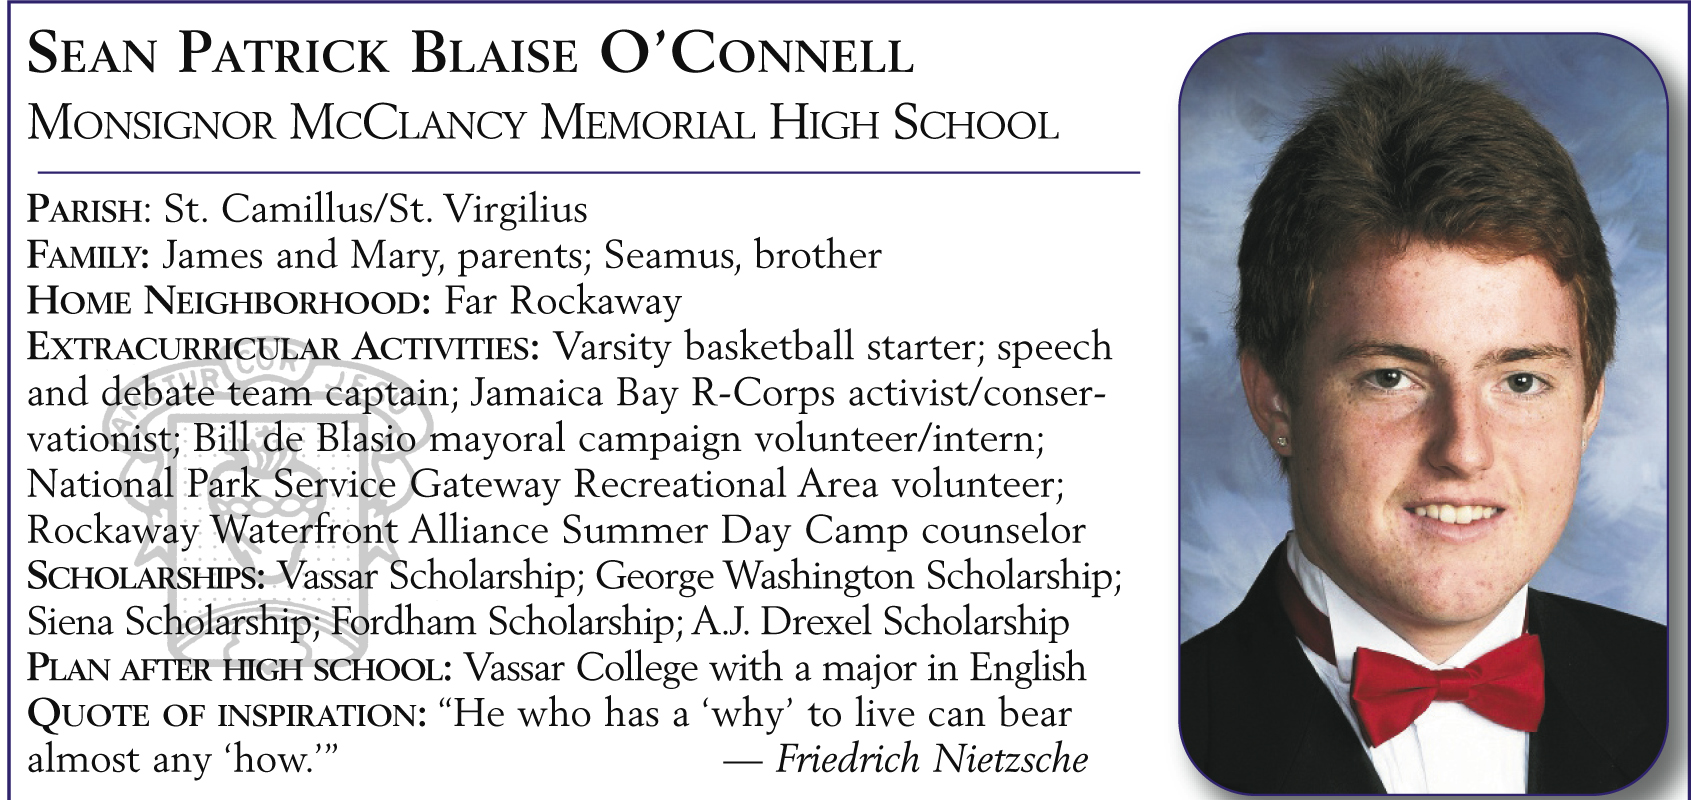 Sean Patrick Blaise O'Connell, Msgr. McClancy Memorial High School